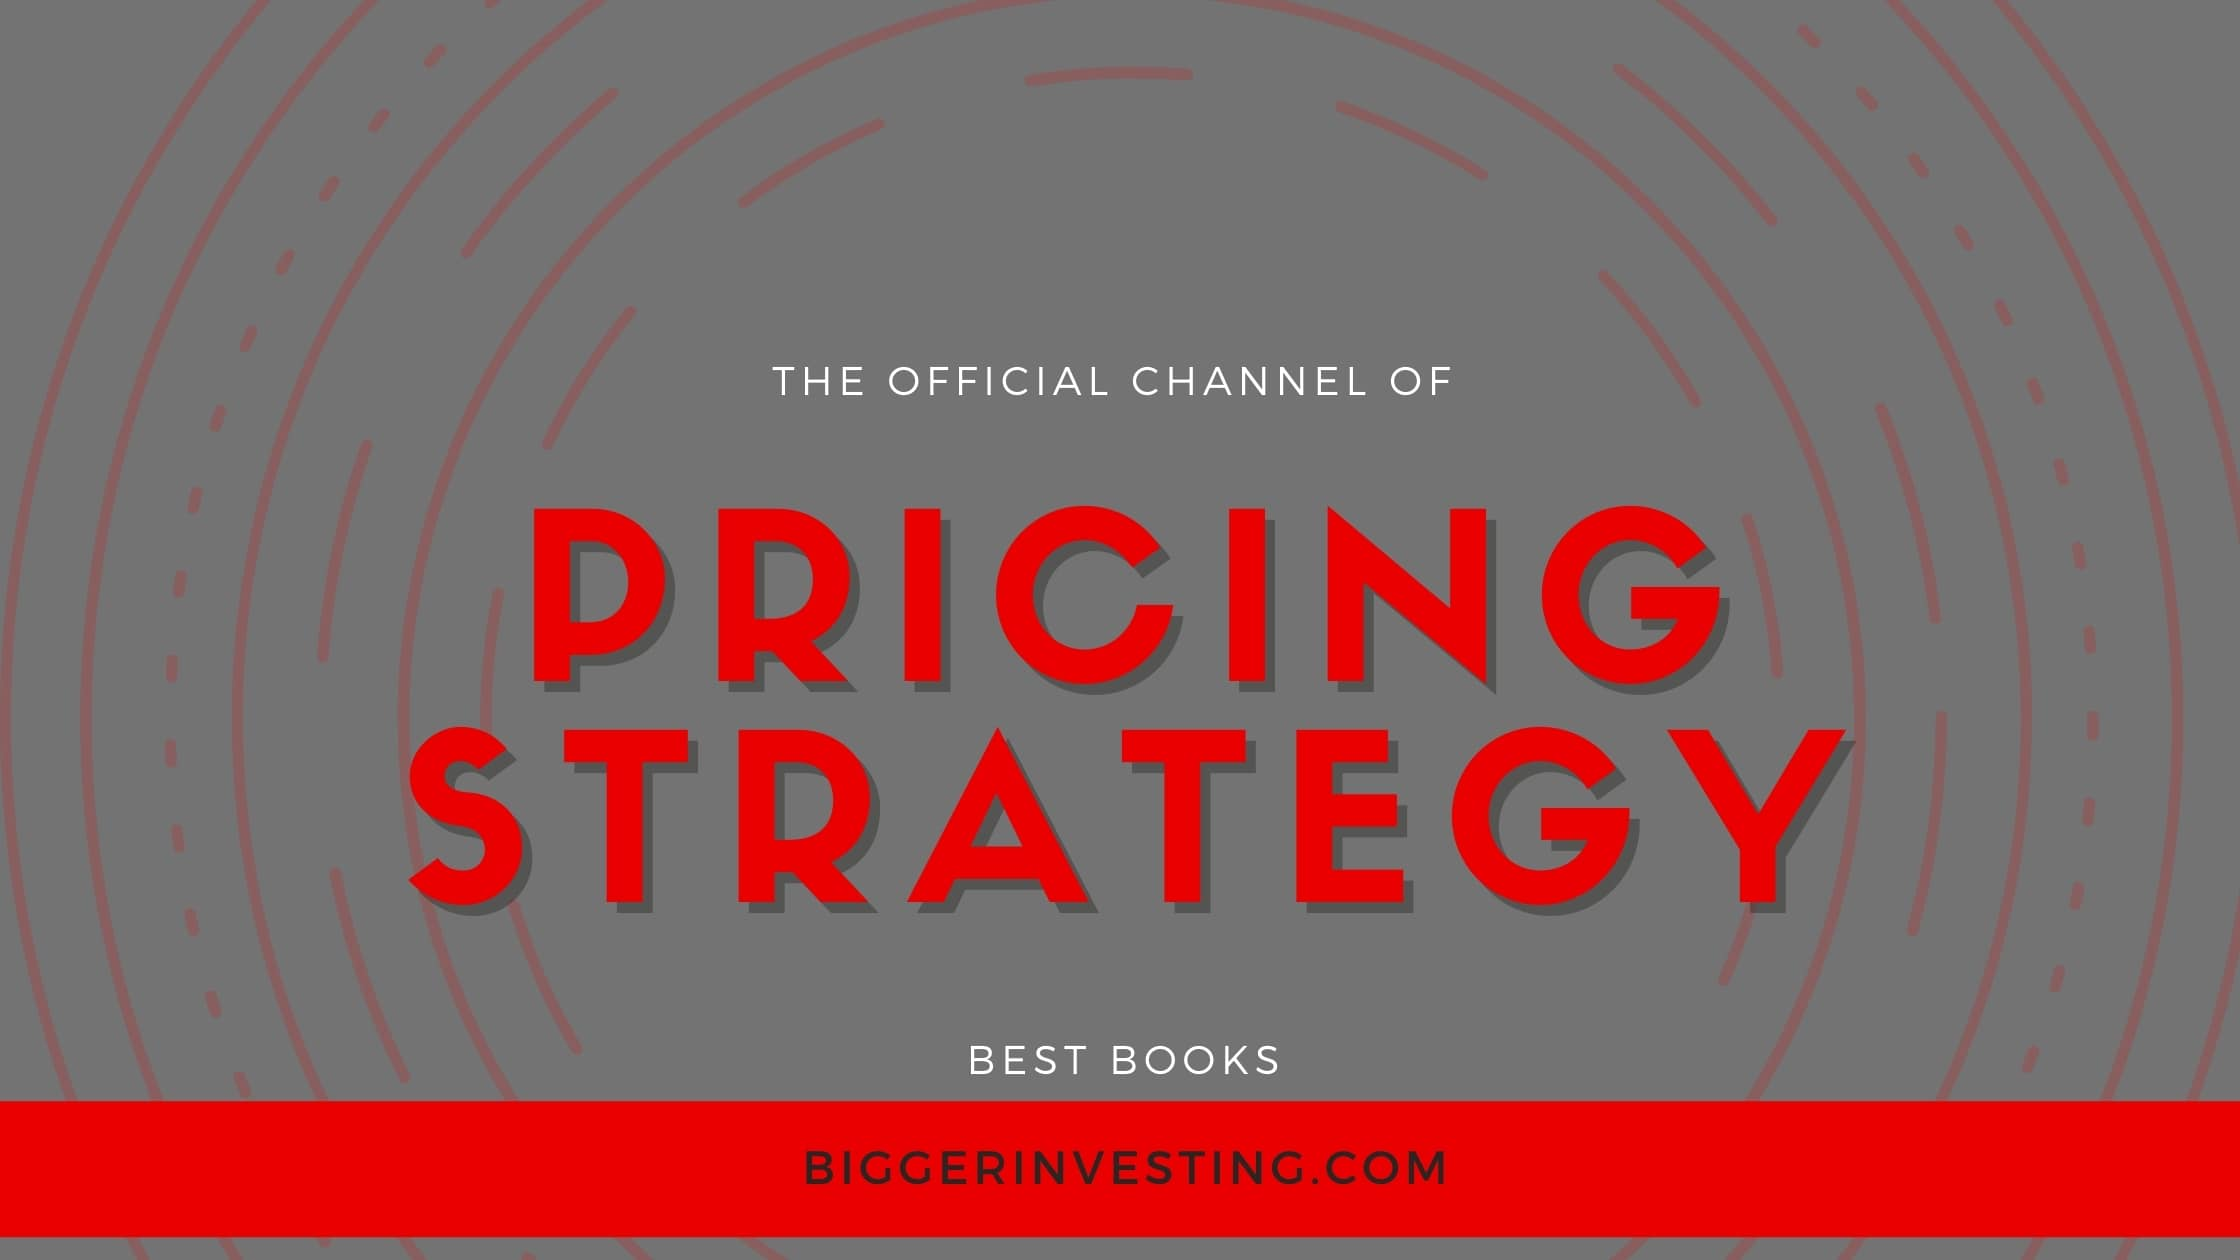 Best Books on Pricing Strategy